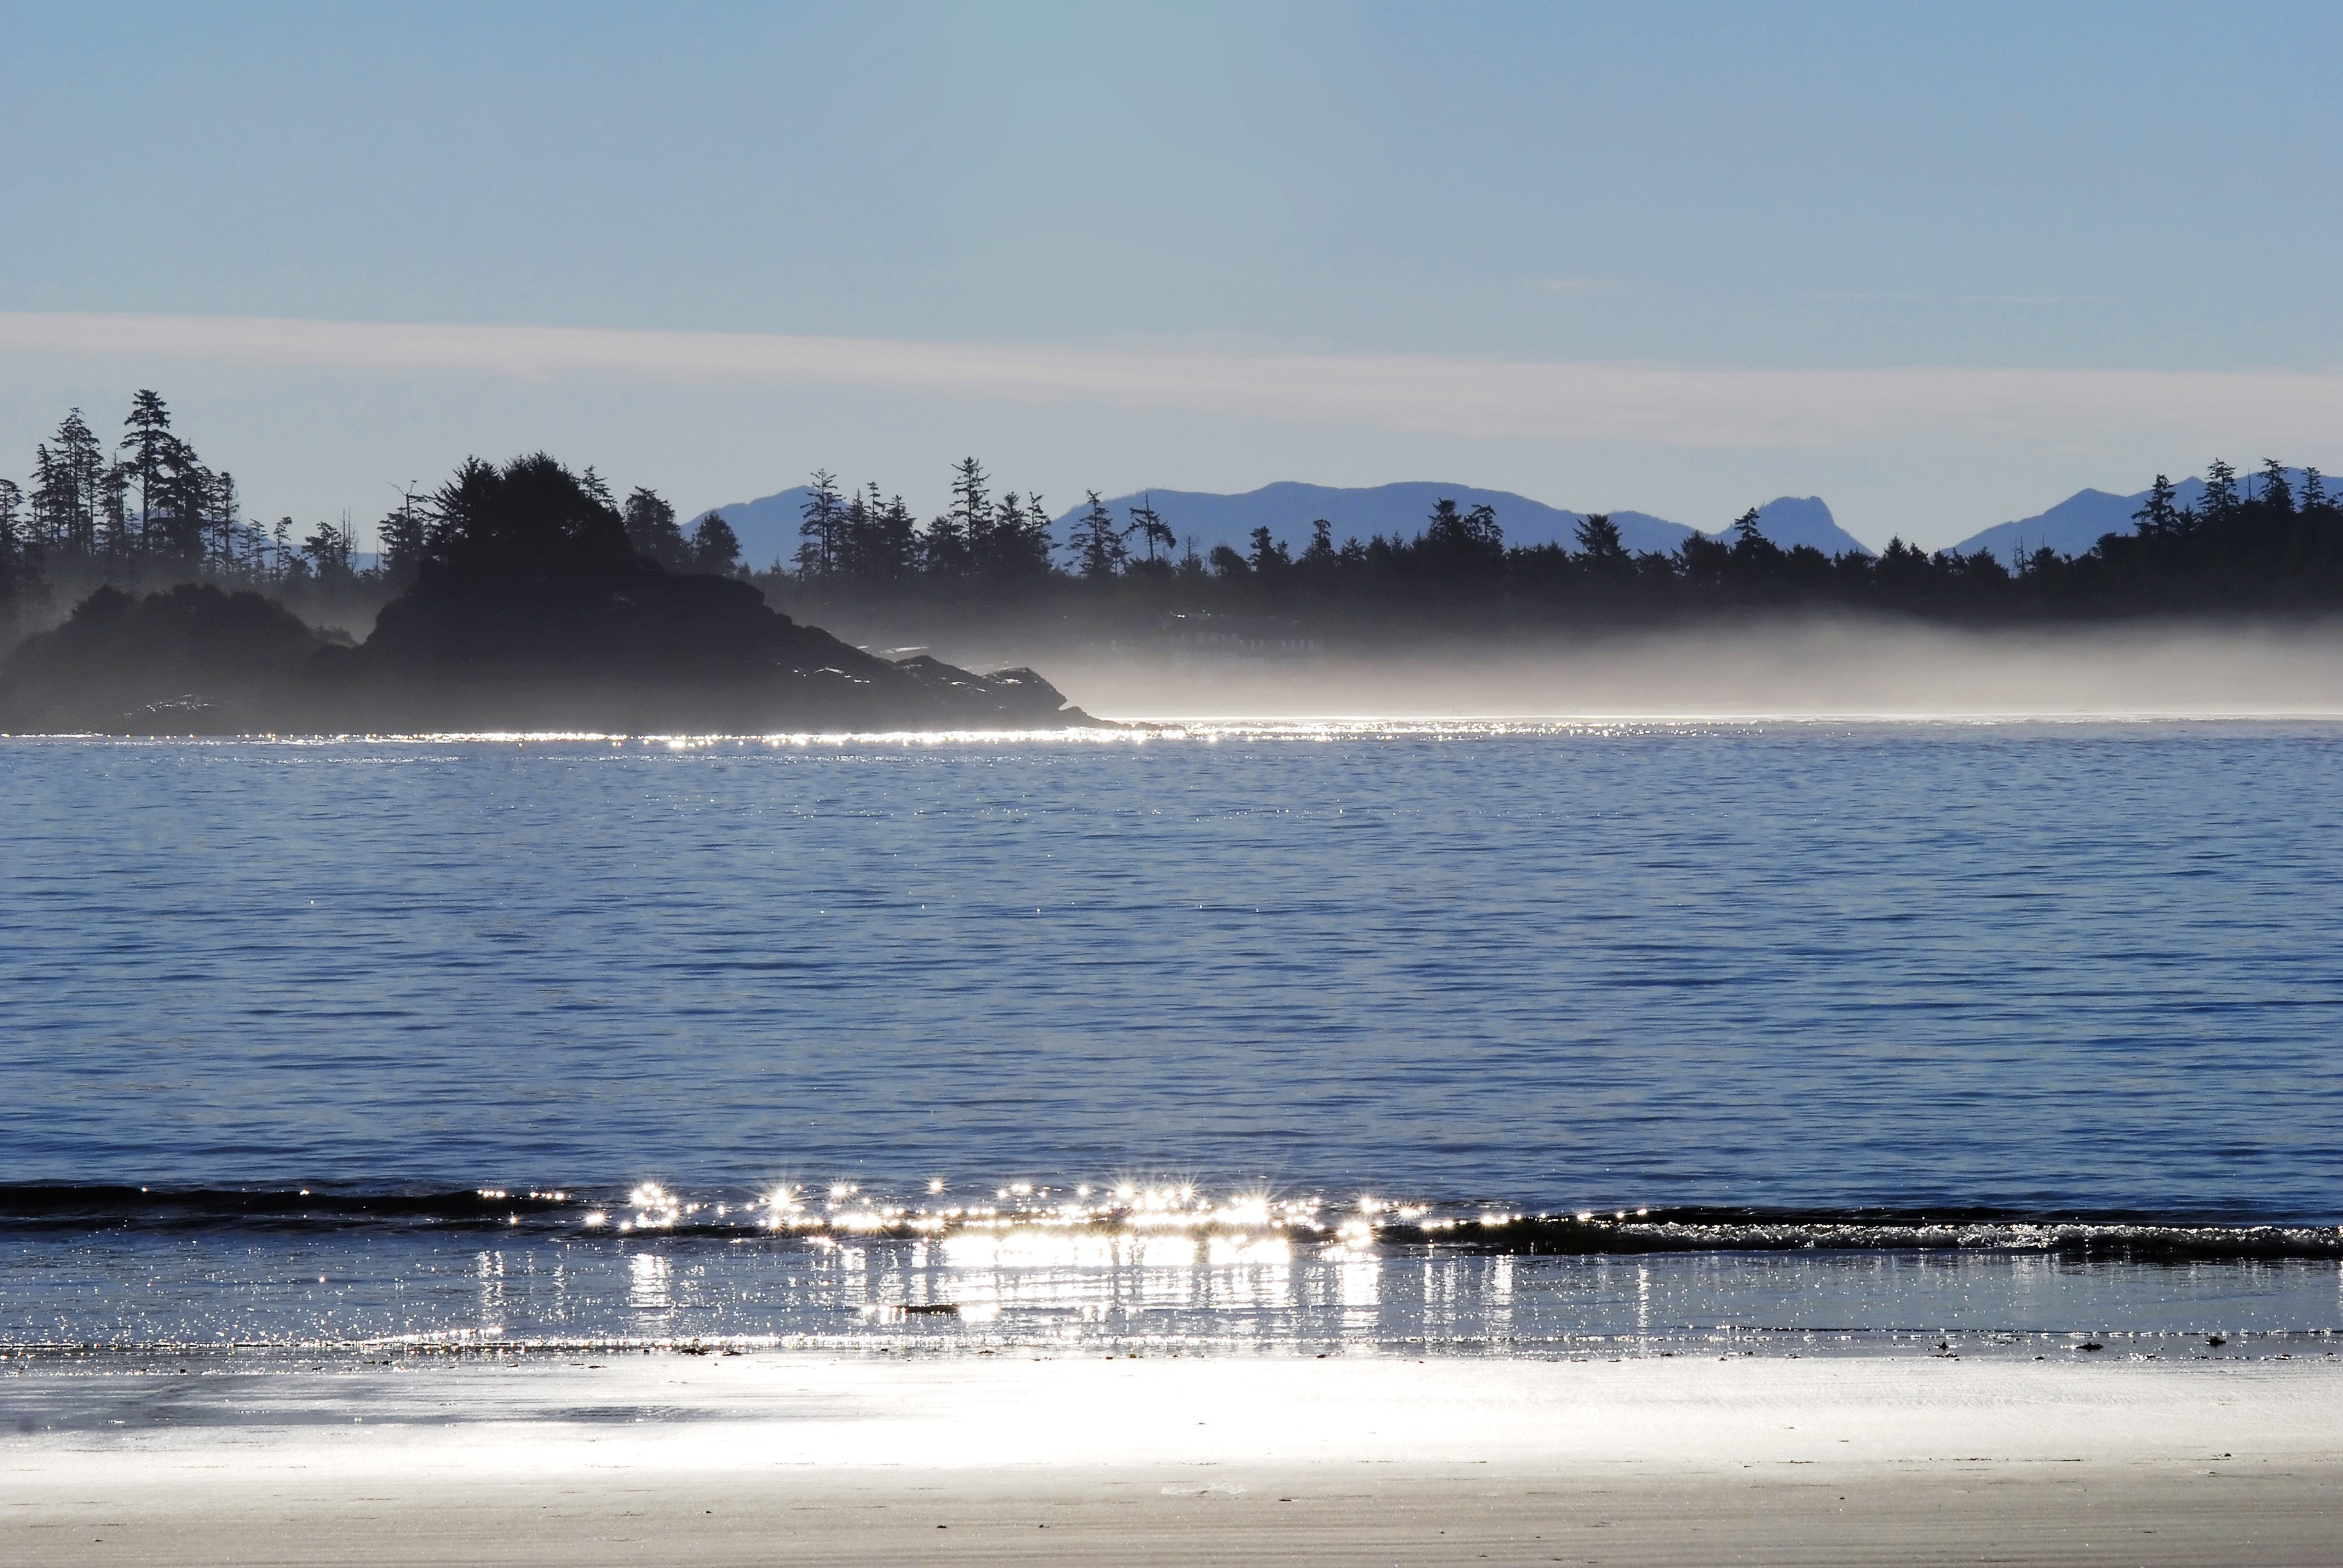 hotels in vancouver island & the sunshine coast